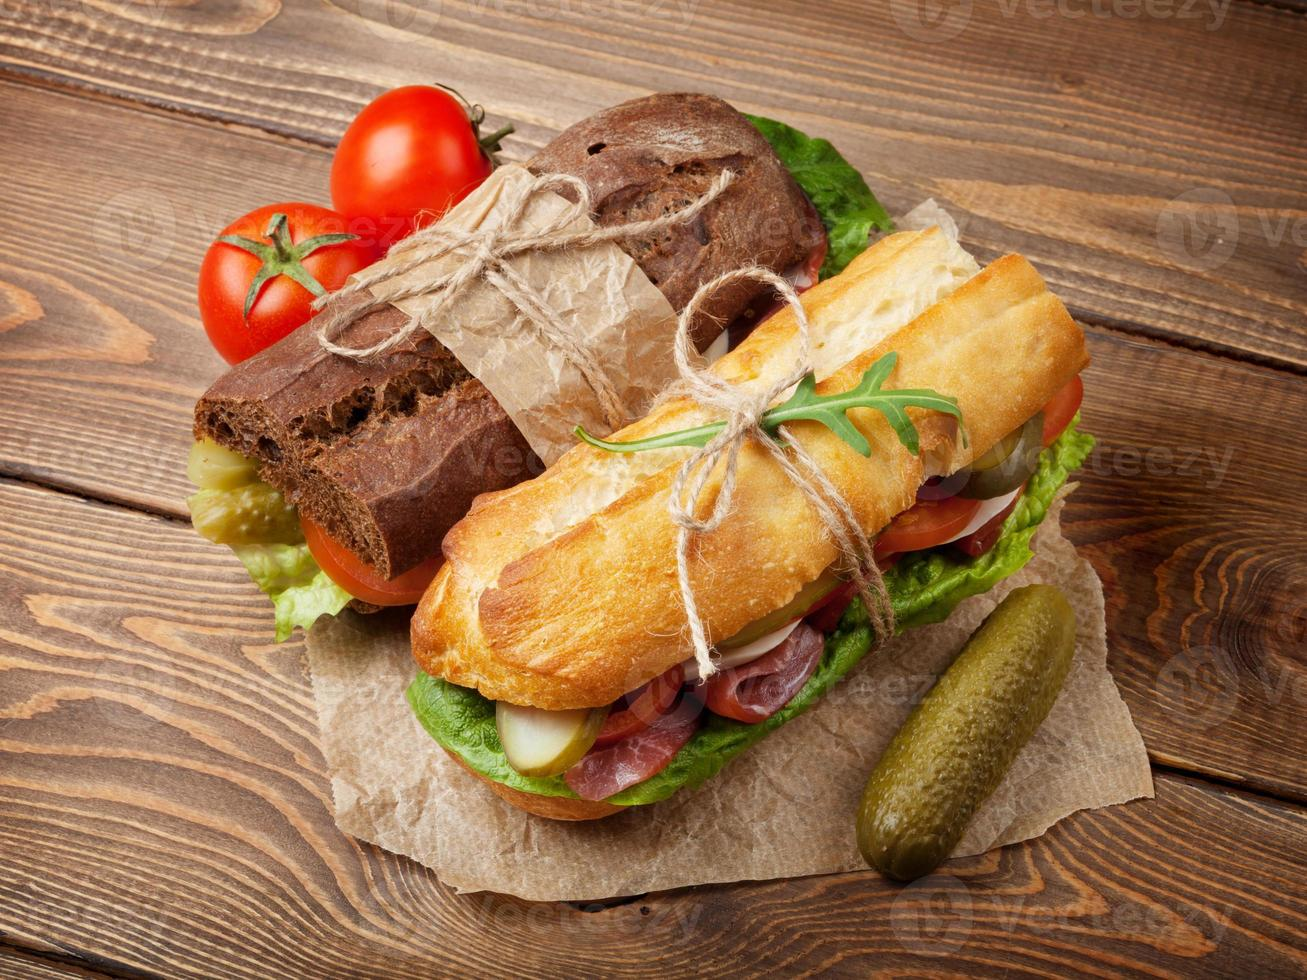 Two sandwiches with salad, ham, cheese and tomatoes photo